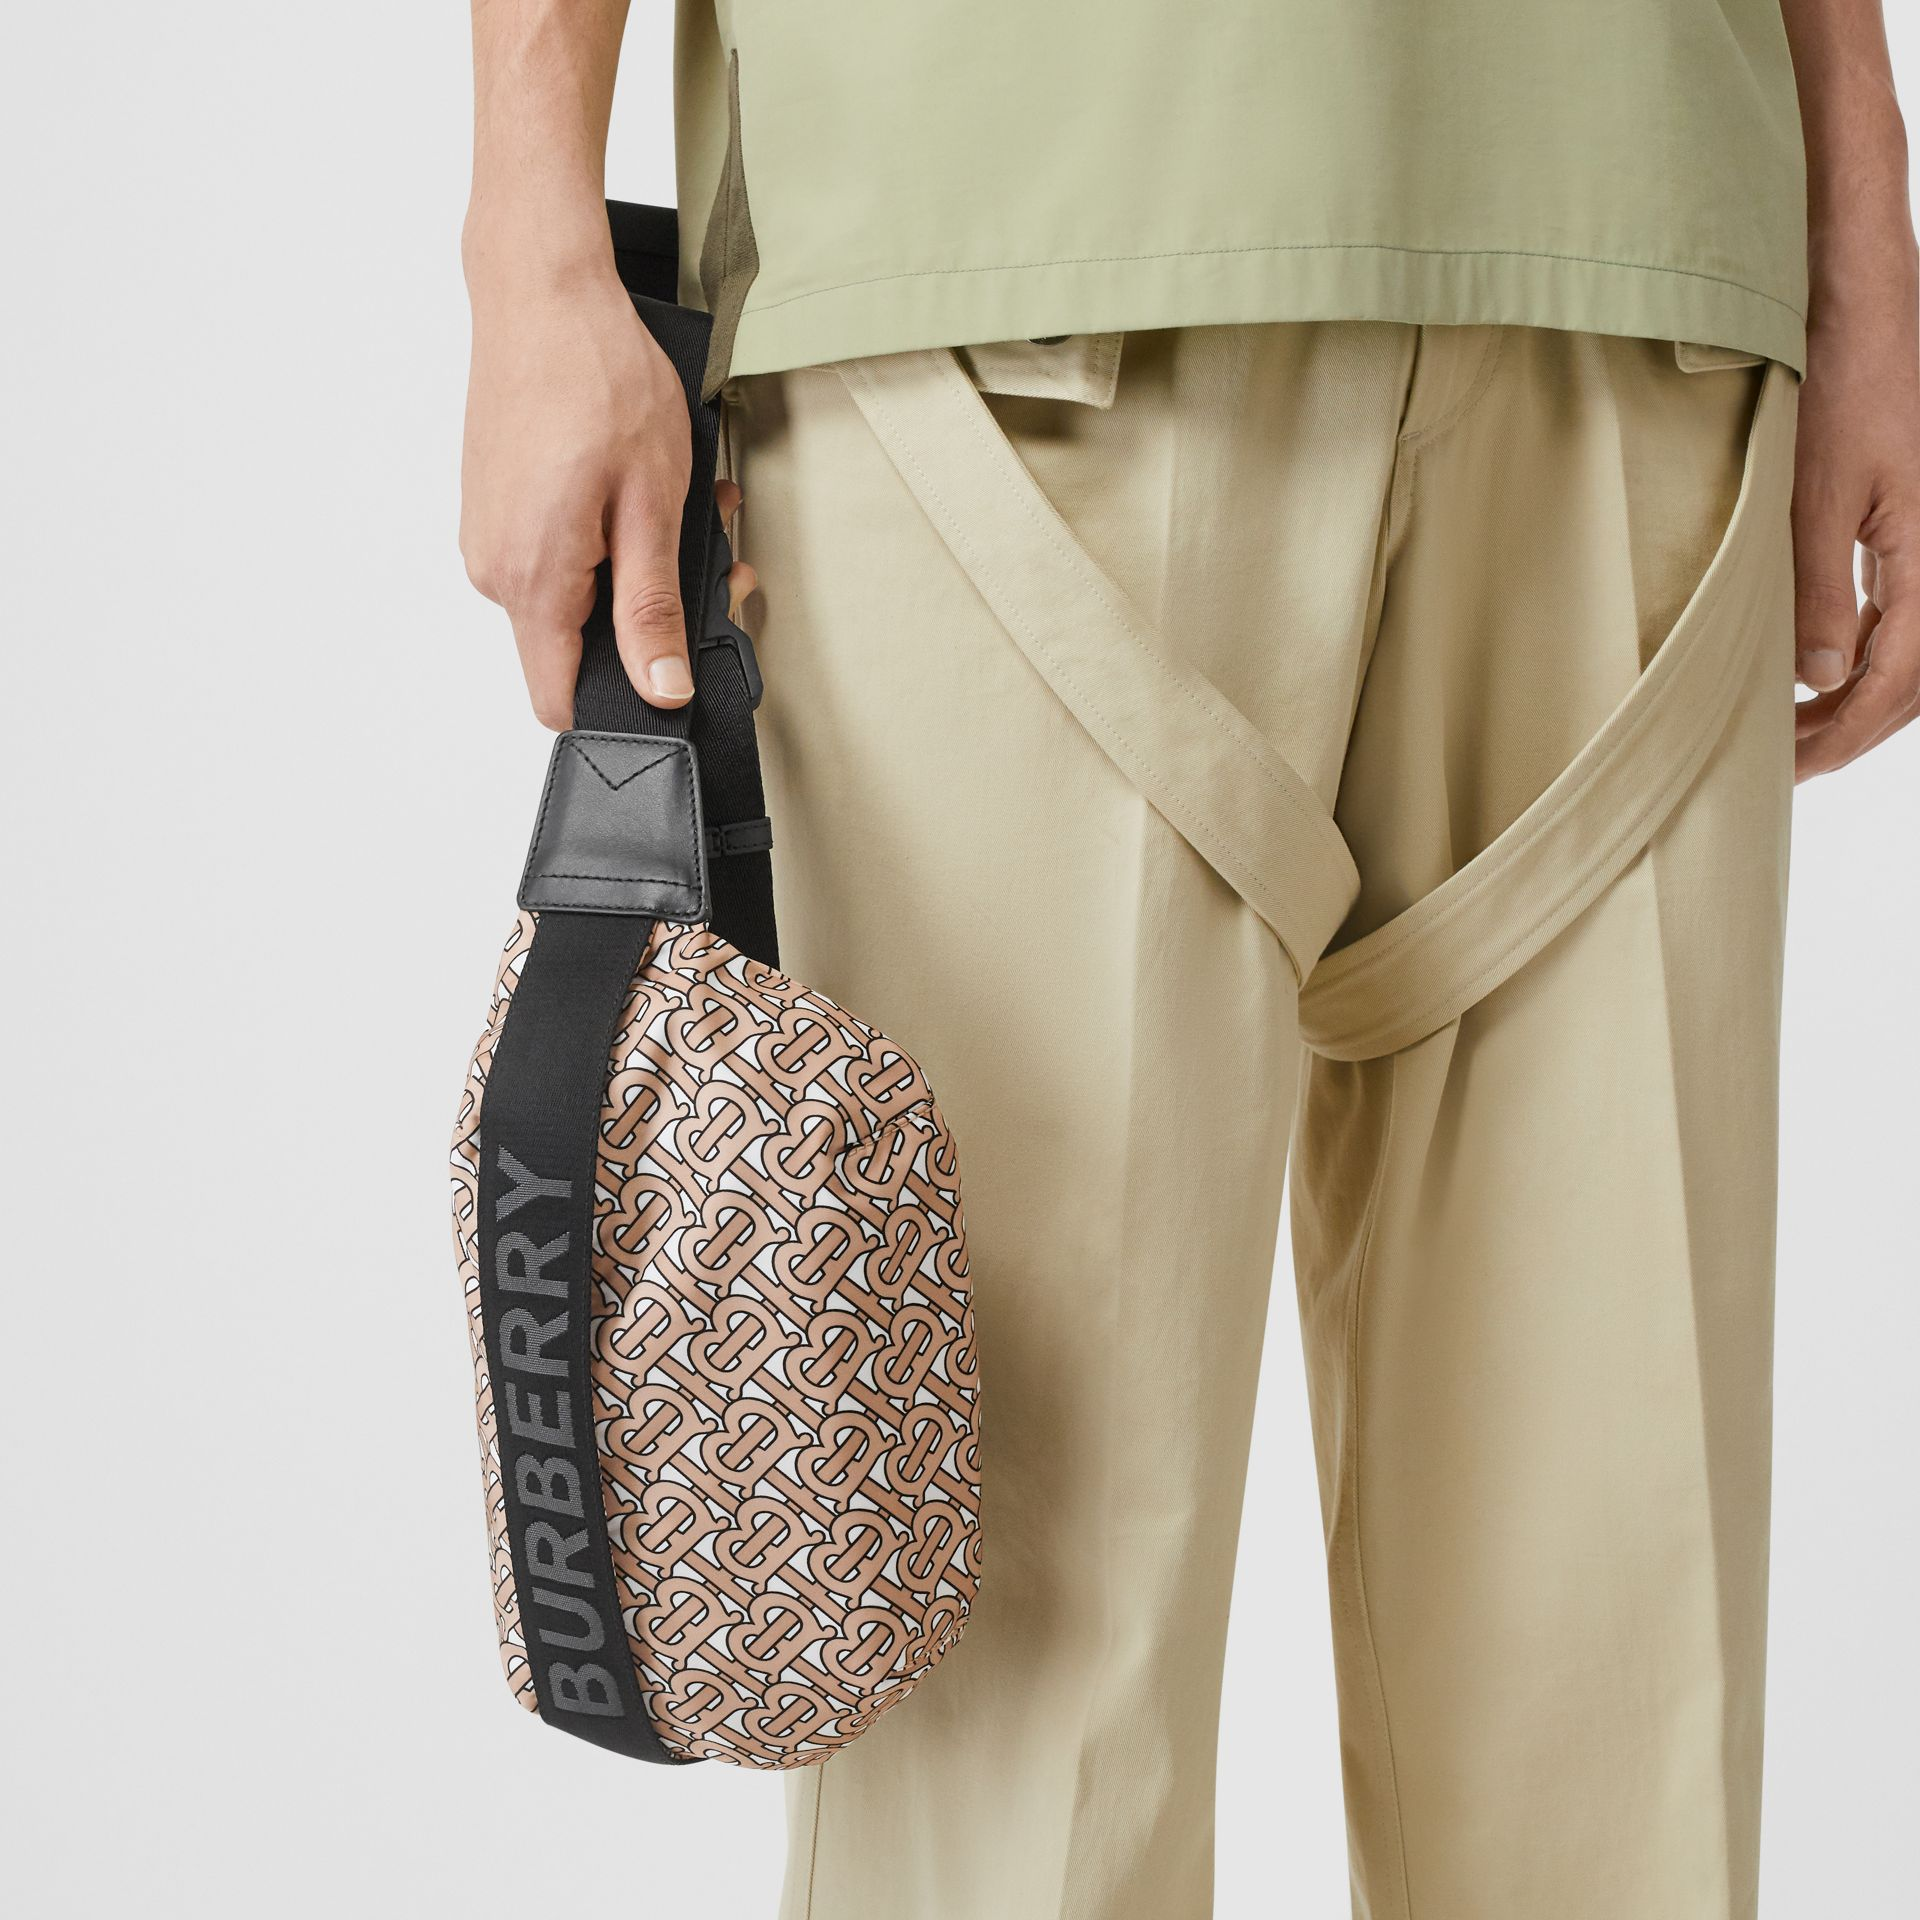 Medium Monogram Print Bum Bag in Beige | Burberry Canada - gallery image 3